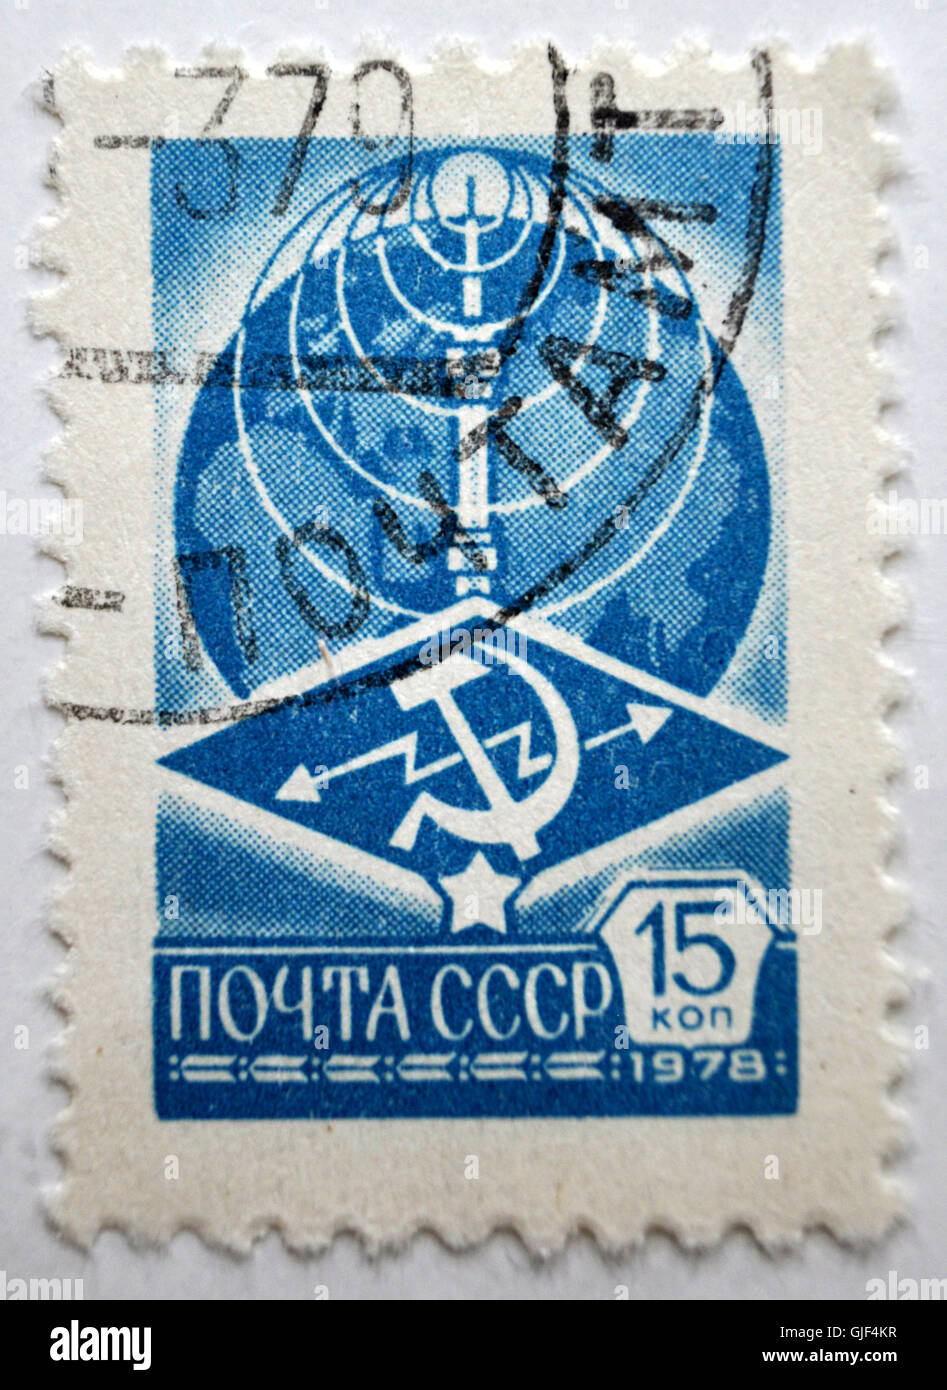 postage stamp, CCCP, USSR. 1978 - Stock Image